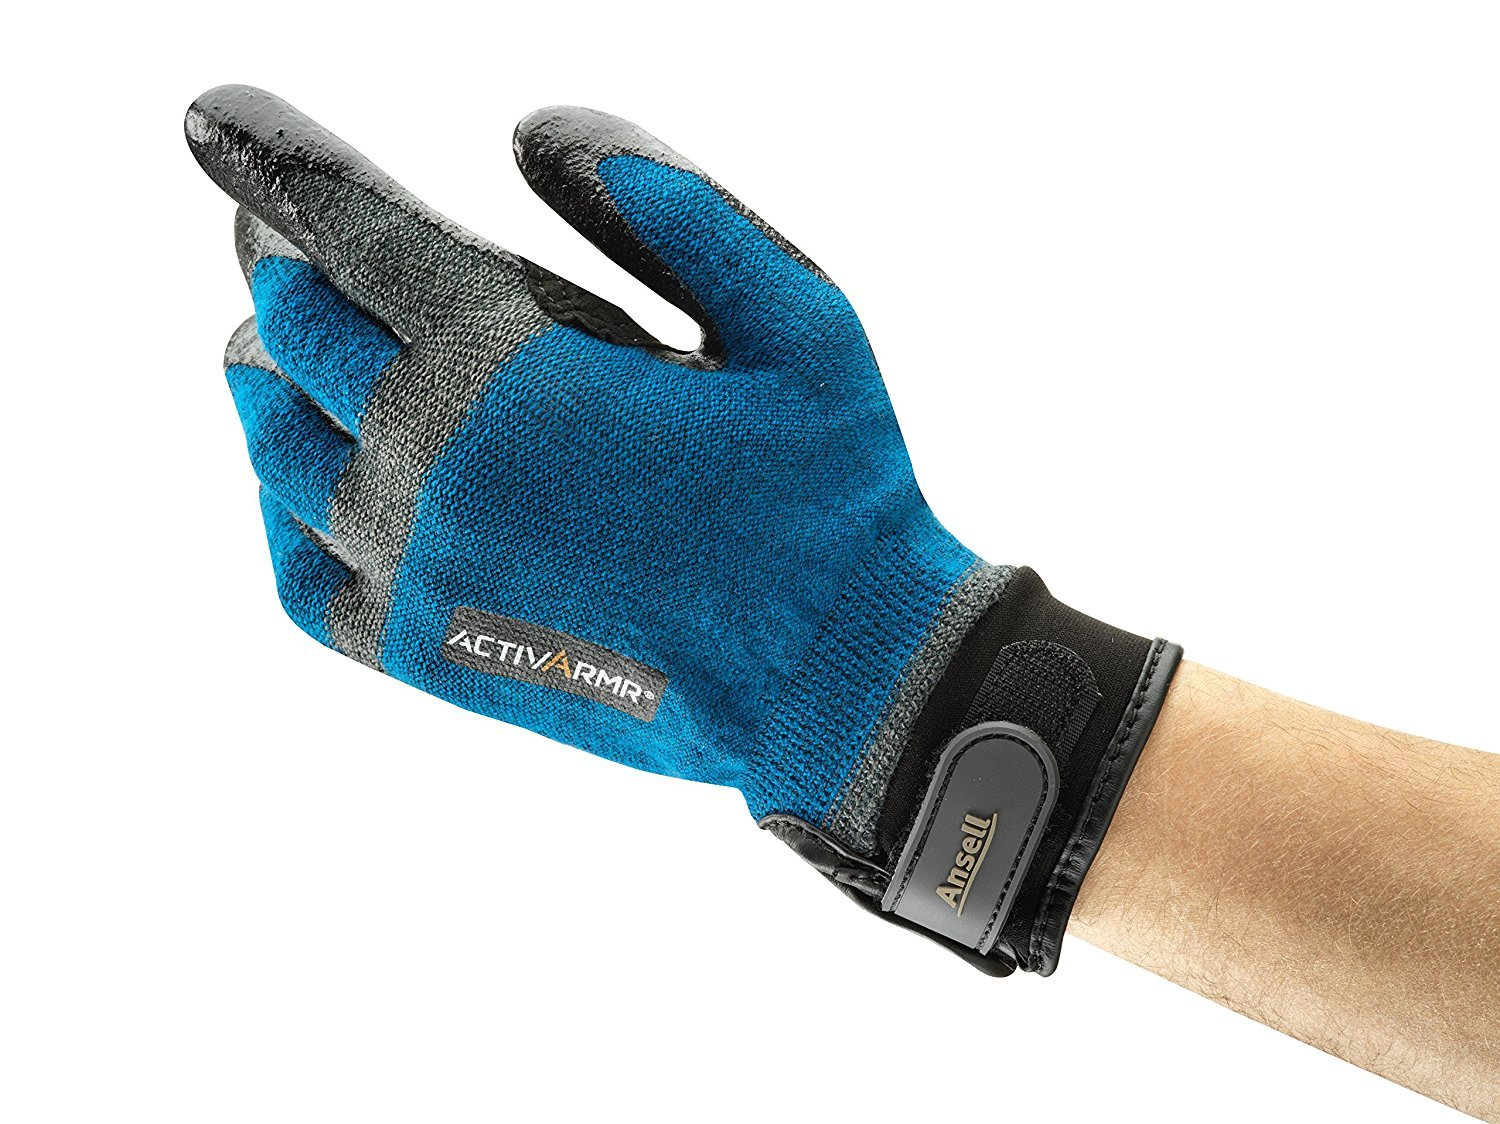 Ansell ActivArmr 97-002 Kevlar/Stainless Steel HVAC Glove, Nitrile Coating, Adjustable Cuff, Large (Pack of 1 Pair)